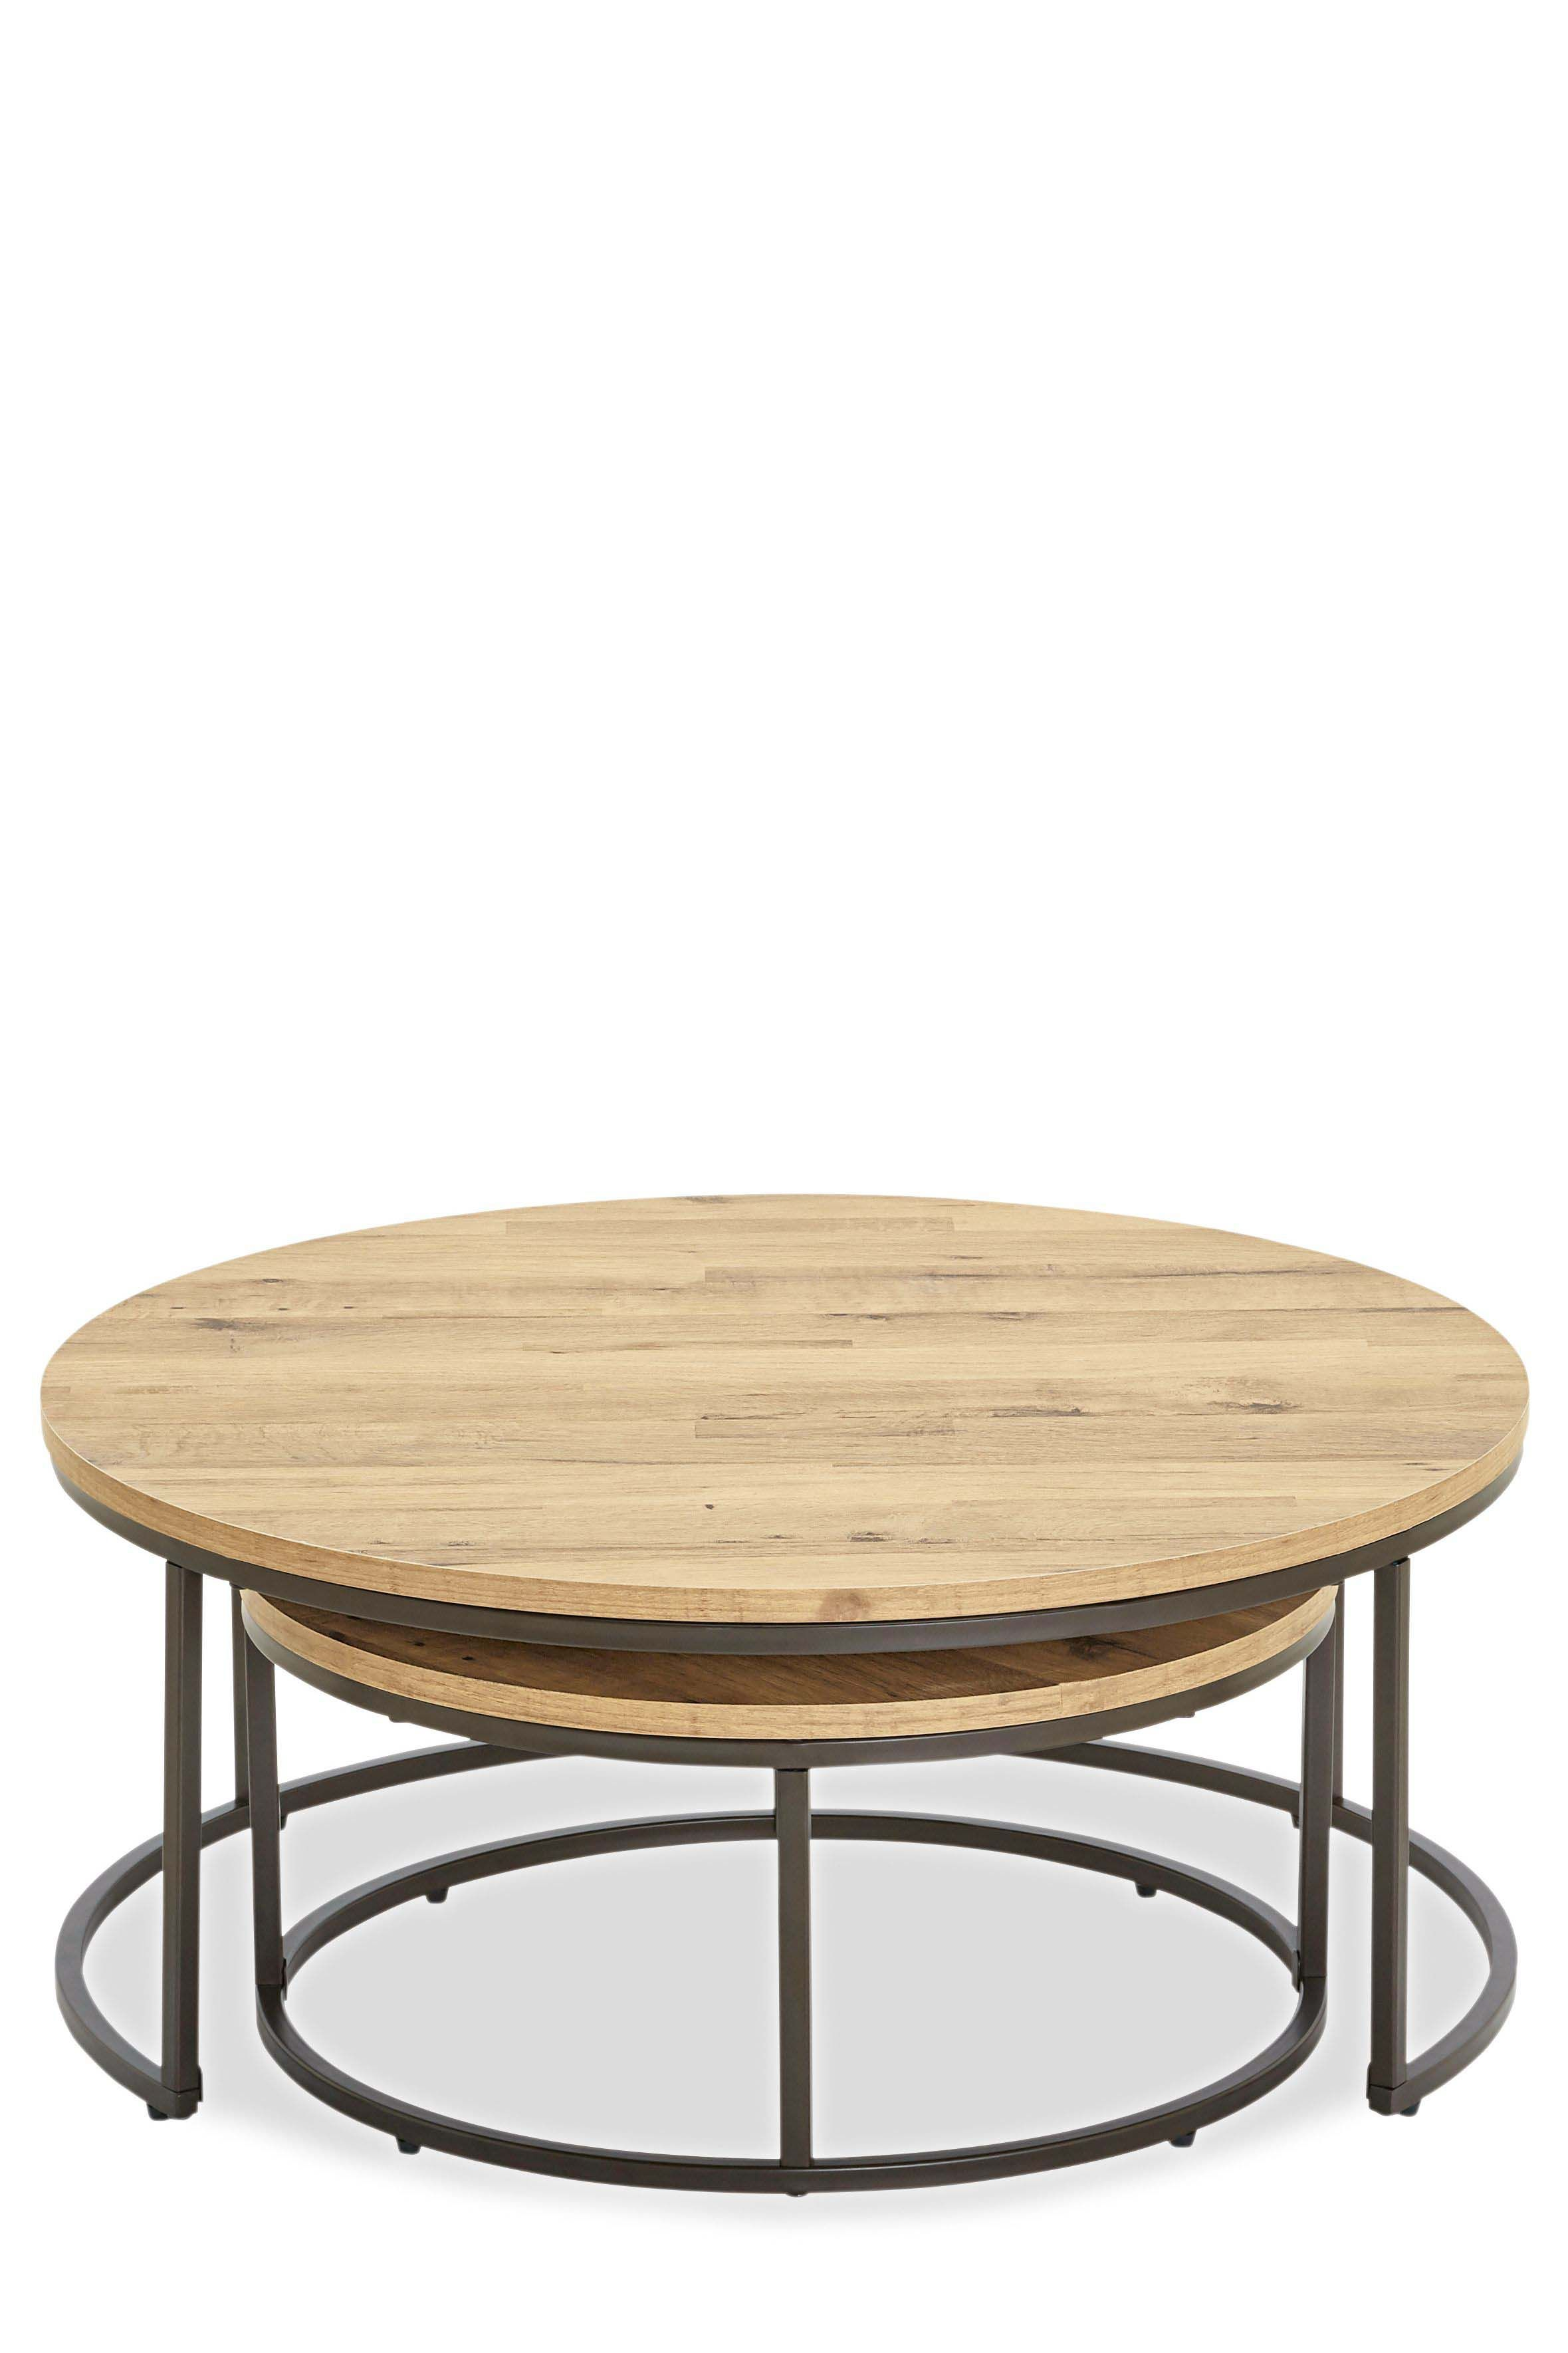 Bronx Nest Of 2 Coffee Tables Furniture Table Coffee